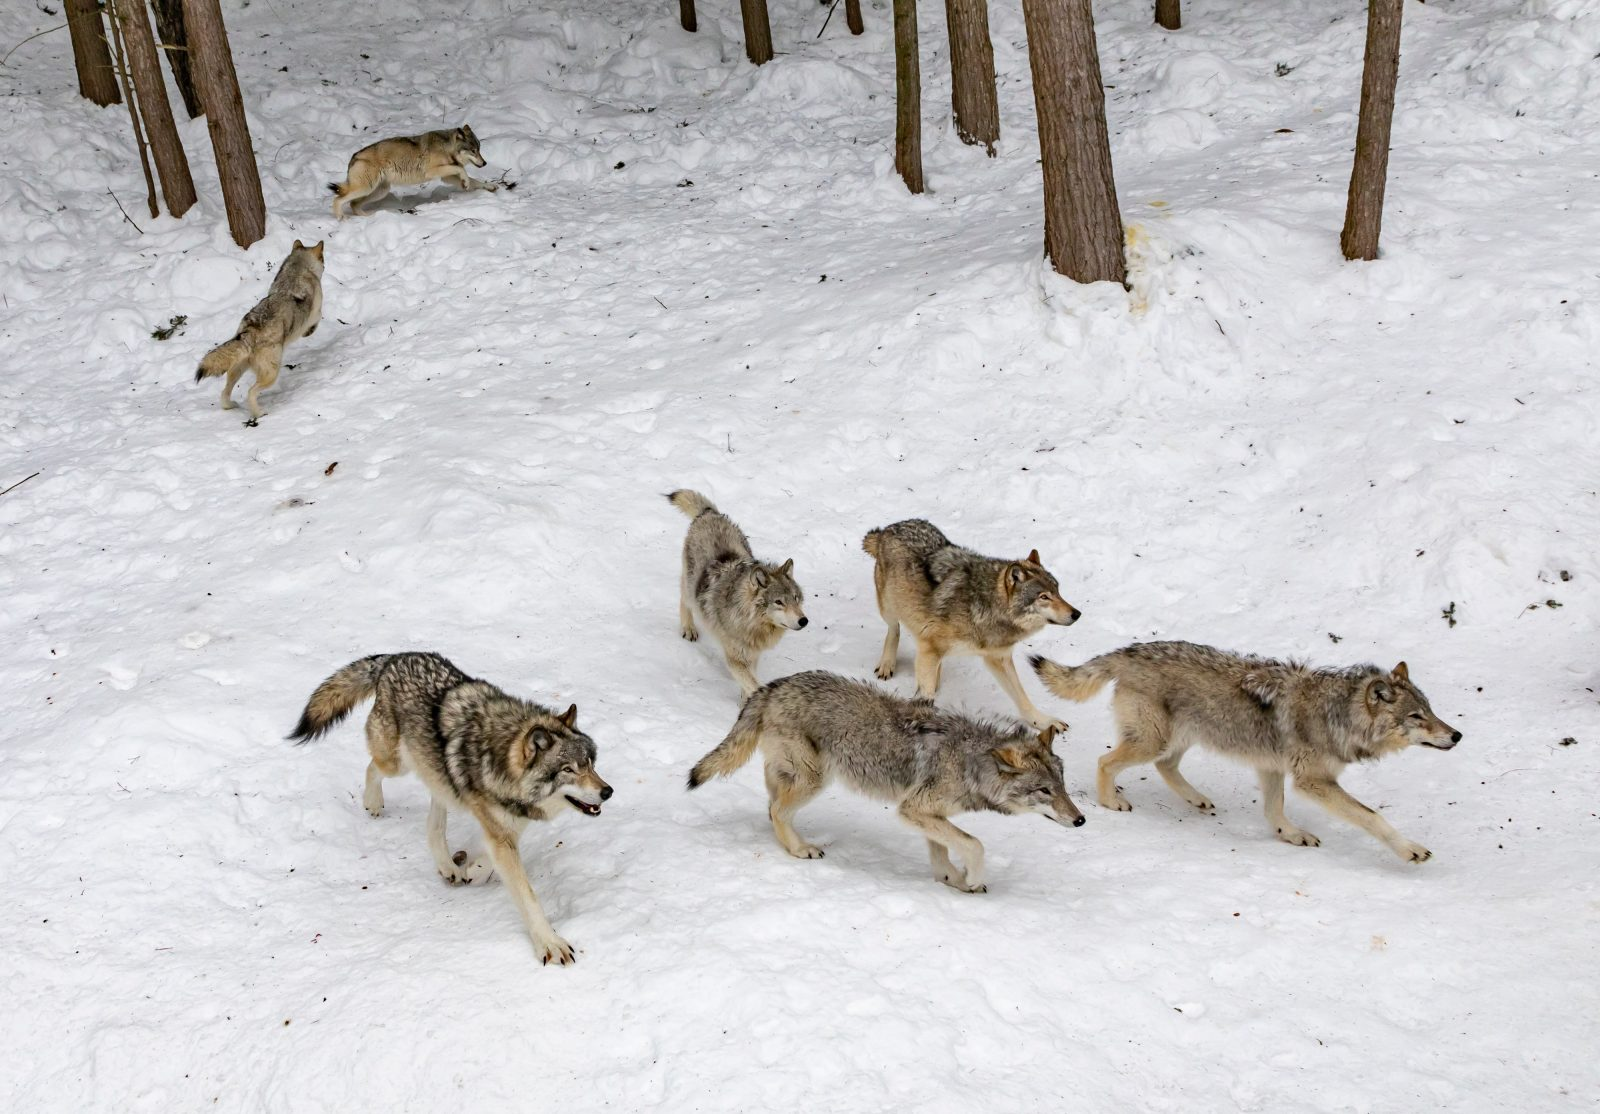 Administration intent on keeping ranchers happy and wolf numbers down